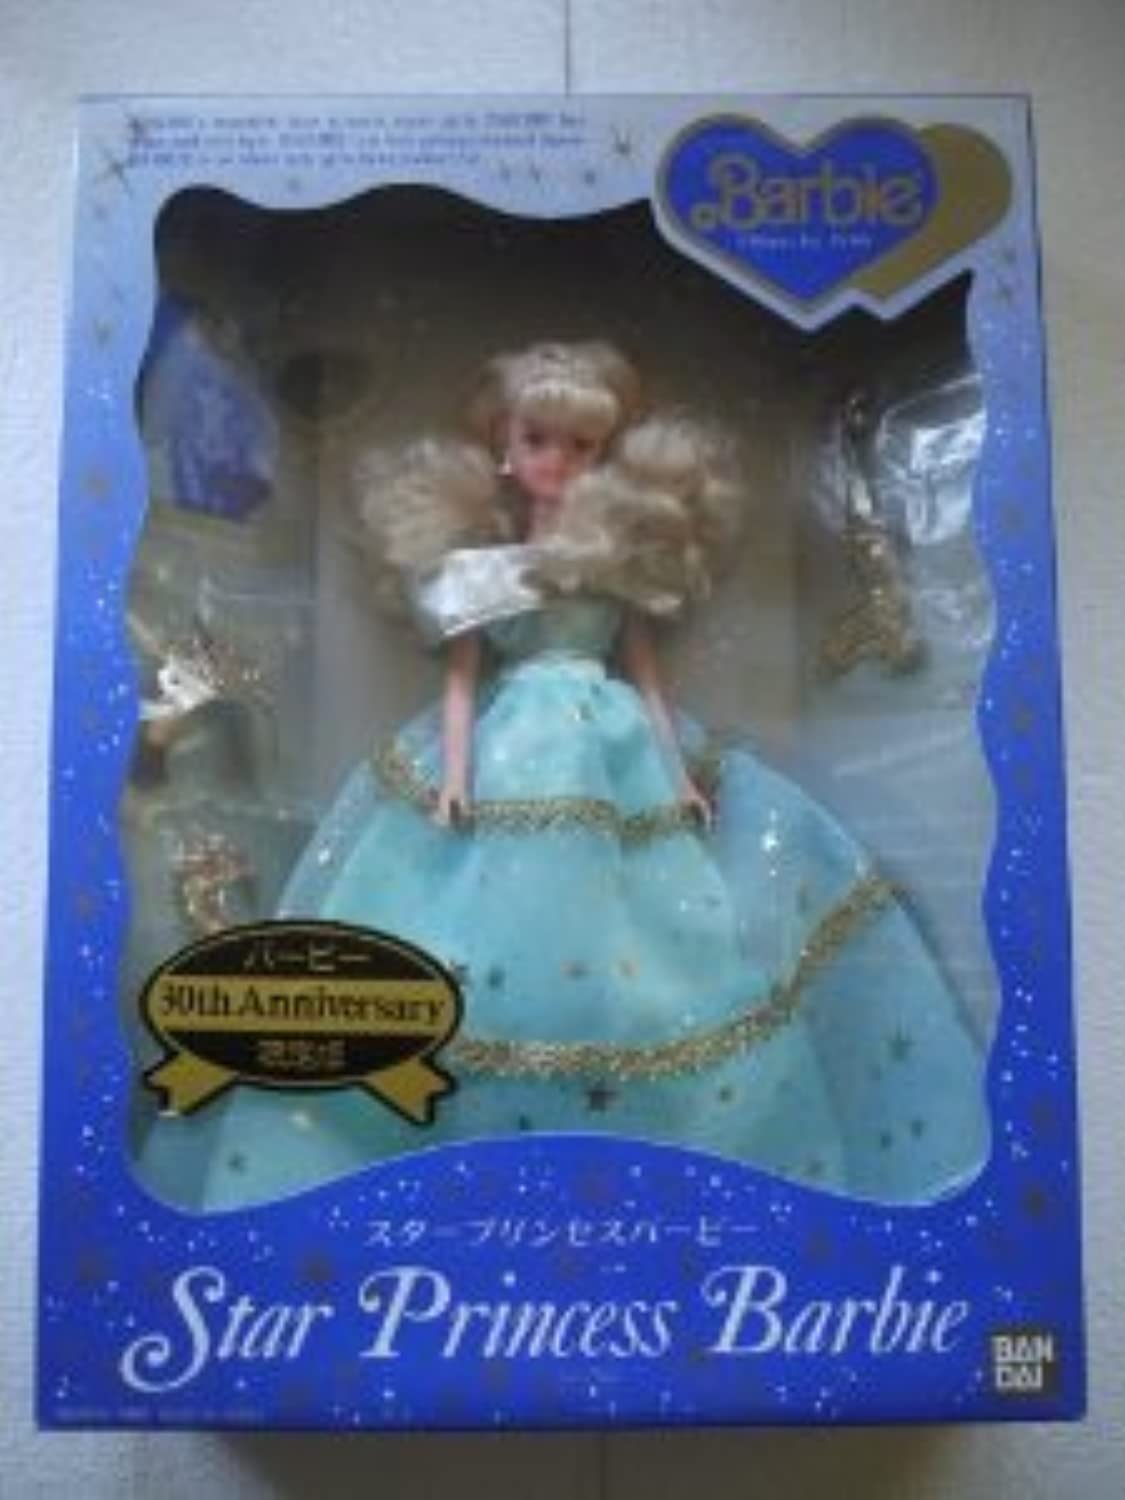 Star Princess Barbie(バービー) #5 (Light Turquoise and Silver Gown) - Bandai (バンダイ) 30th Anniversary Edition 1989 - RARE ドール 人形 フィギュア(並行輸入)